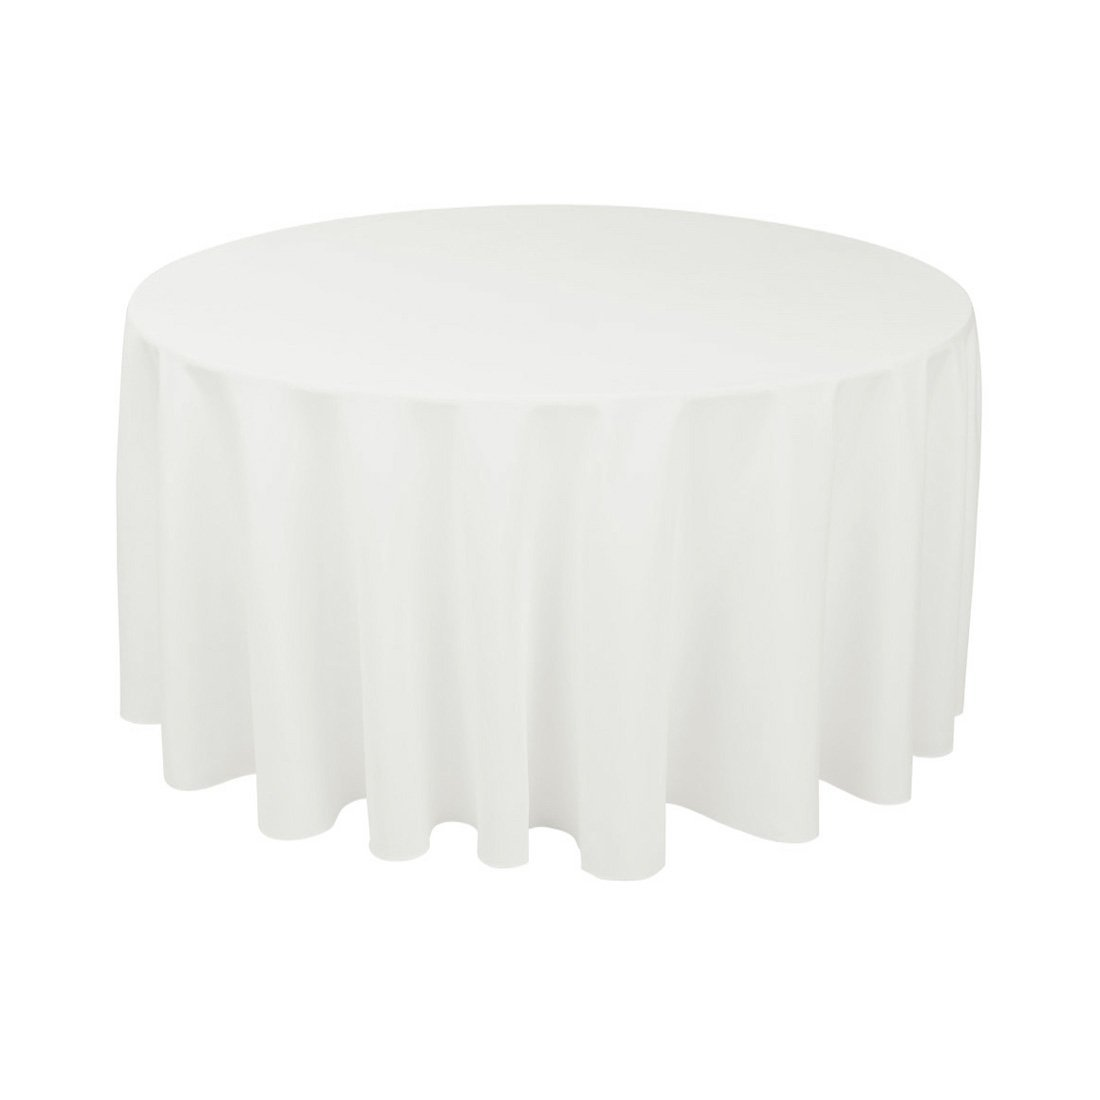 Craft and Party - 10 pcs Round Tablecloth for Home, Party, Wedding or Restaurant Use. (120'' Round White) by Craft & Party (Image #1)